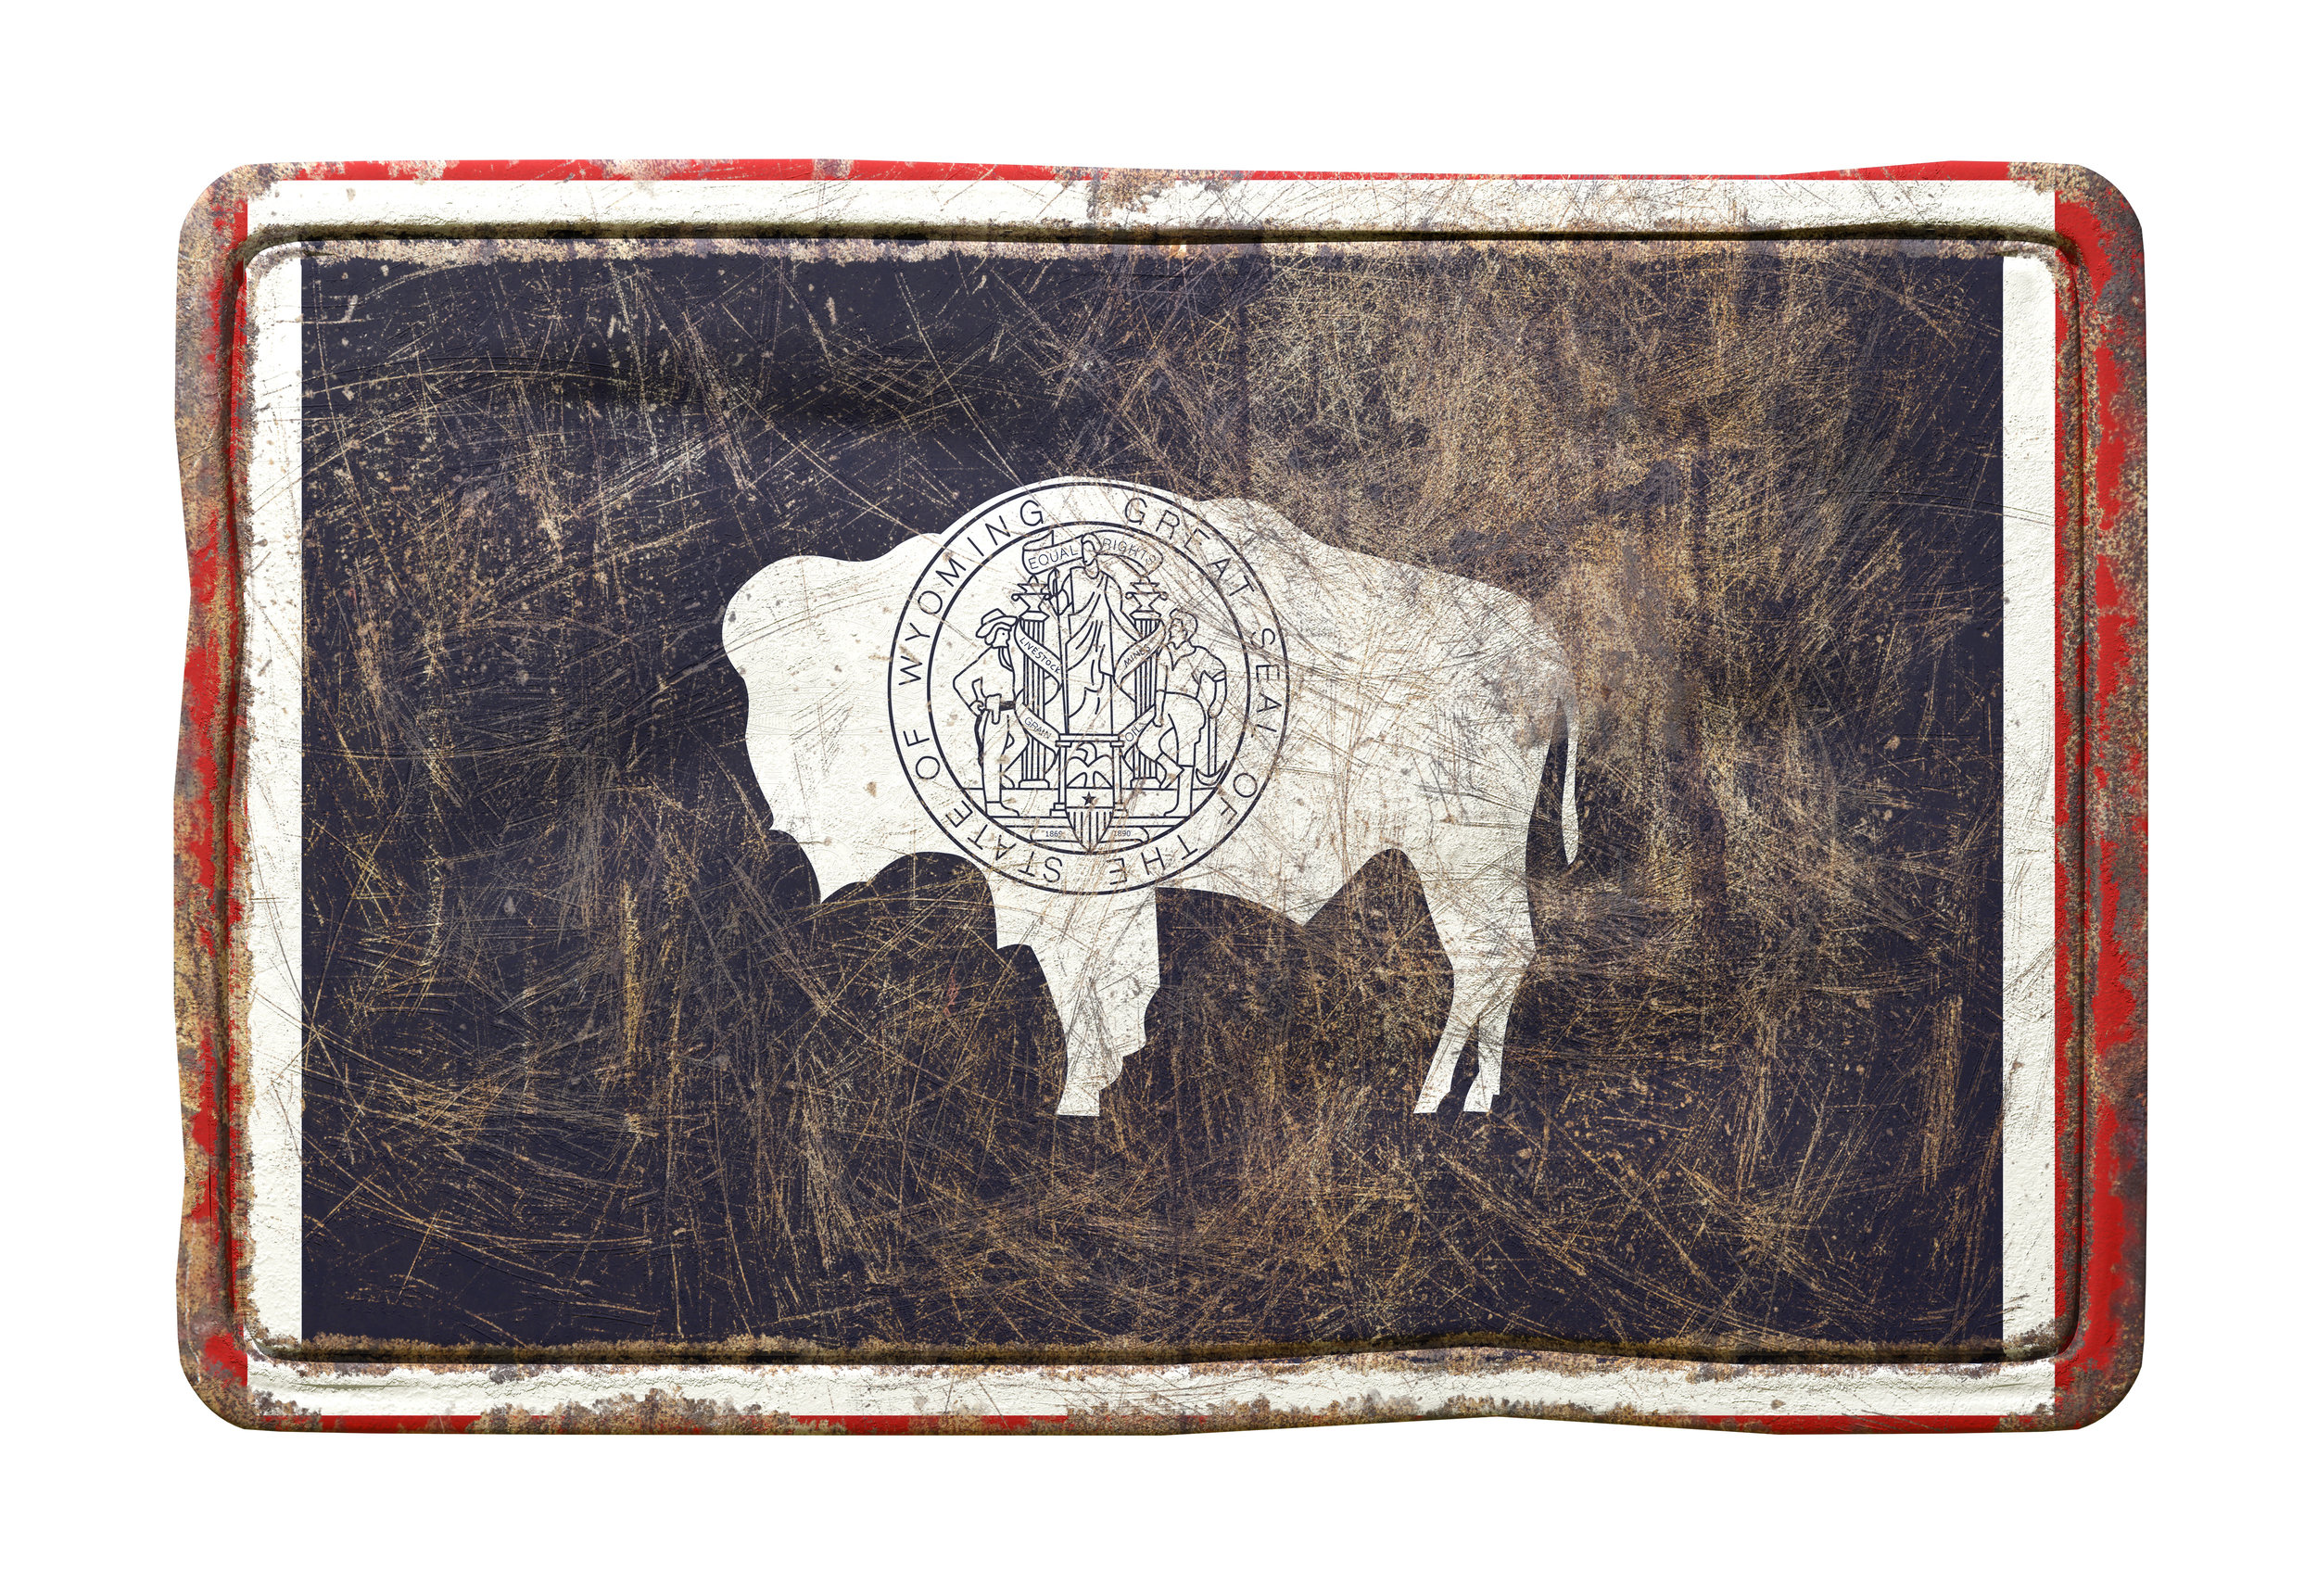 wy-flag-distressed-iStock-901157648.jpg